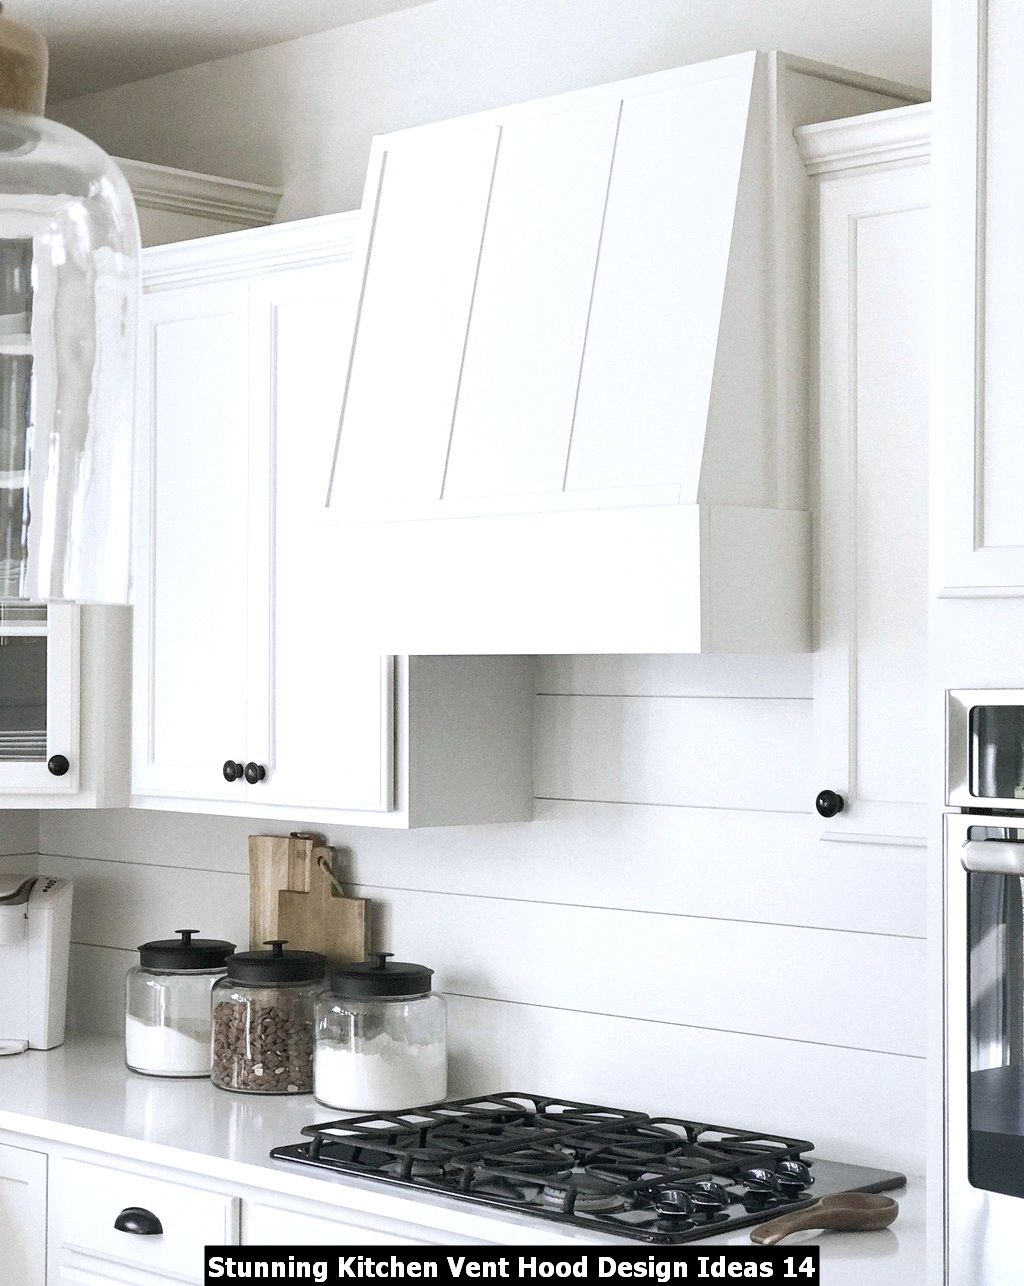 Stunning Kitchen Vent Hood Design Ideas 14